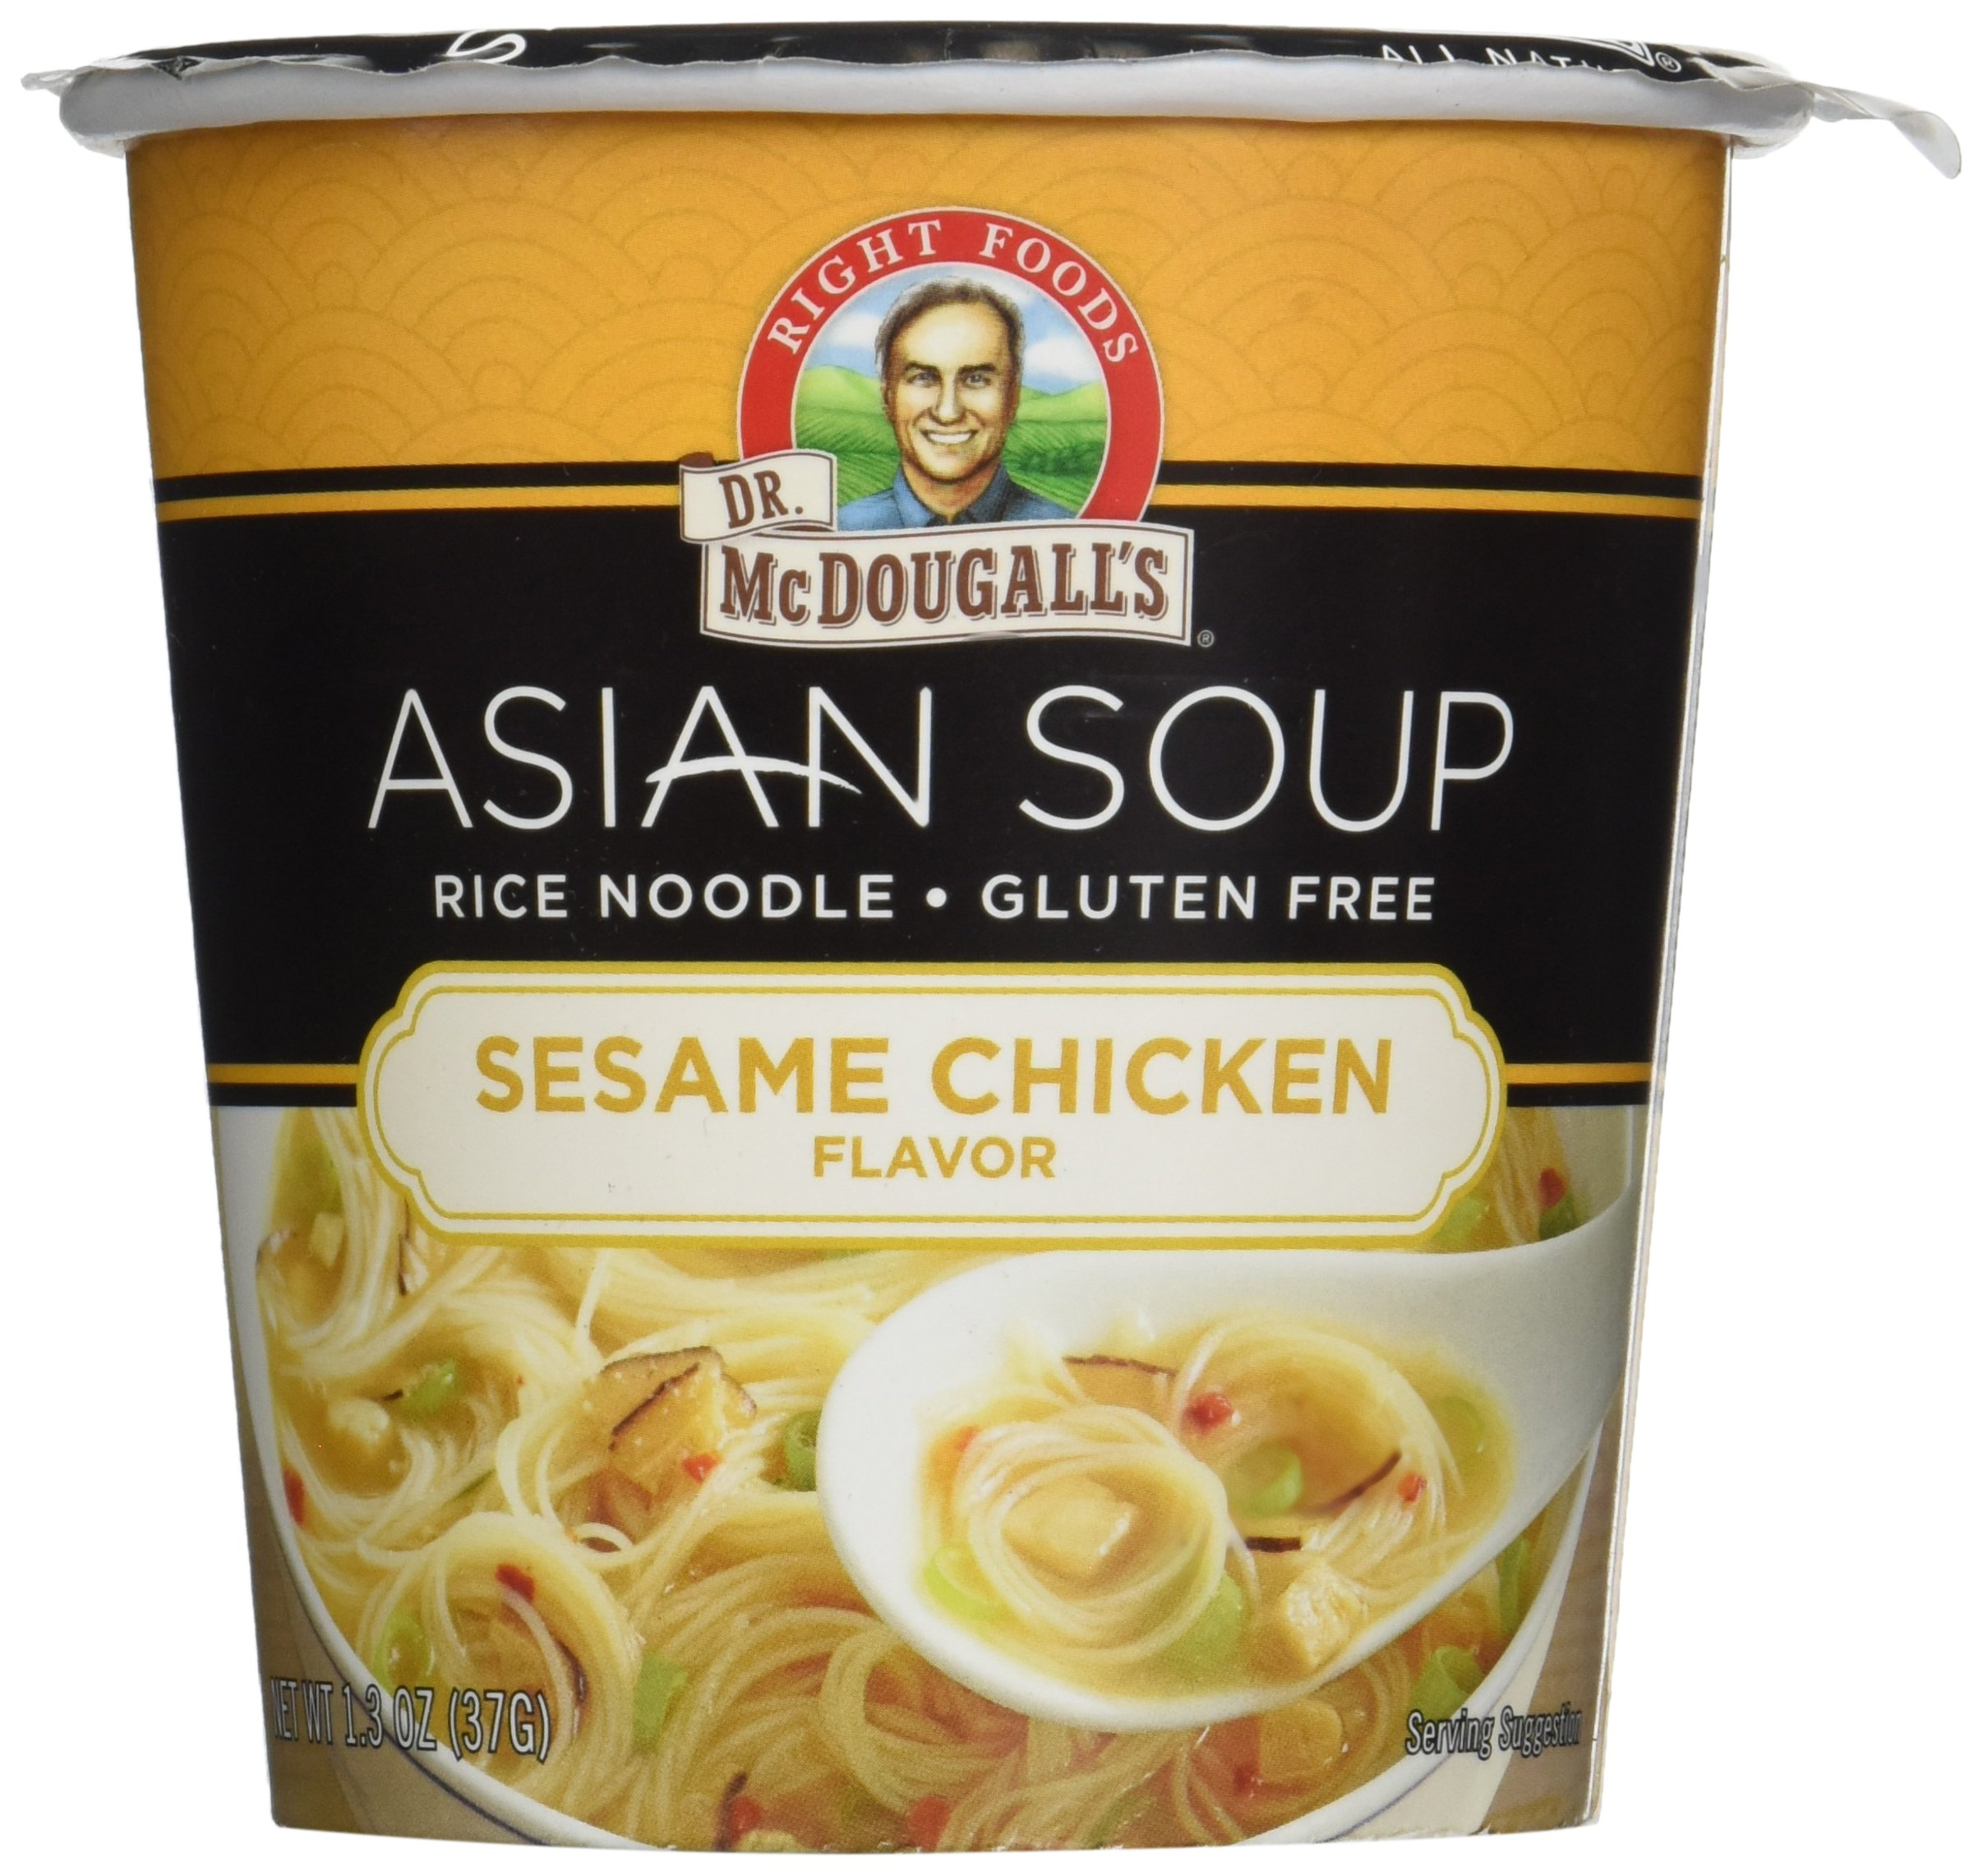 Dr McDougalls Sesame Chicken Rice Noodle Asian Soup, 1.3 Ounce - 6 per case. by Dr. McDougalls Right Foods